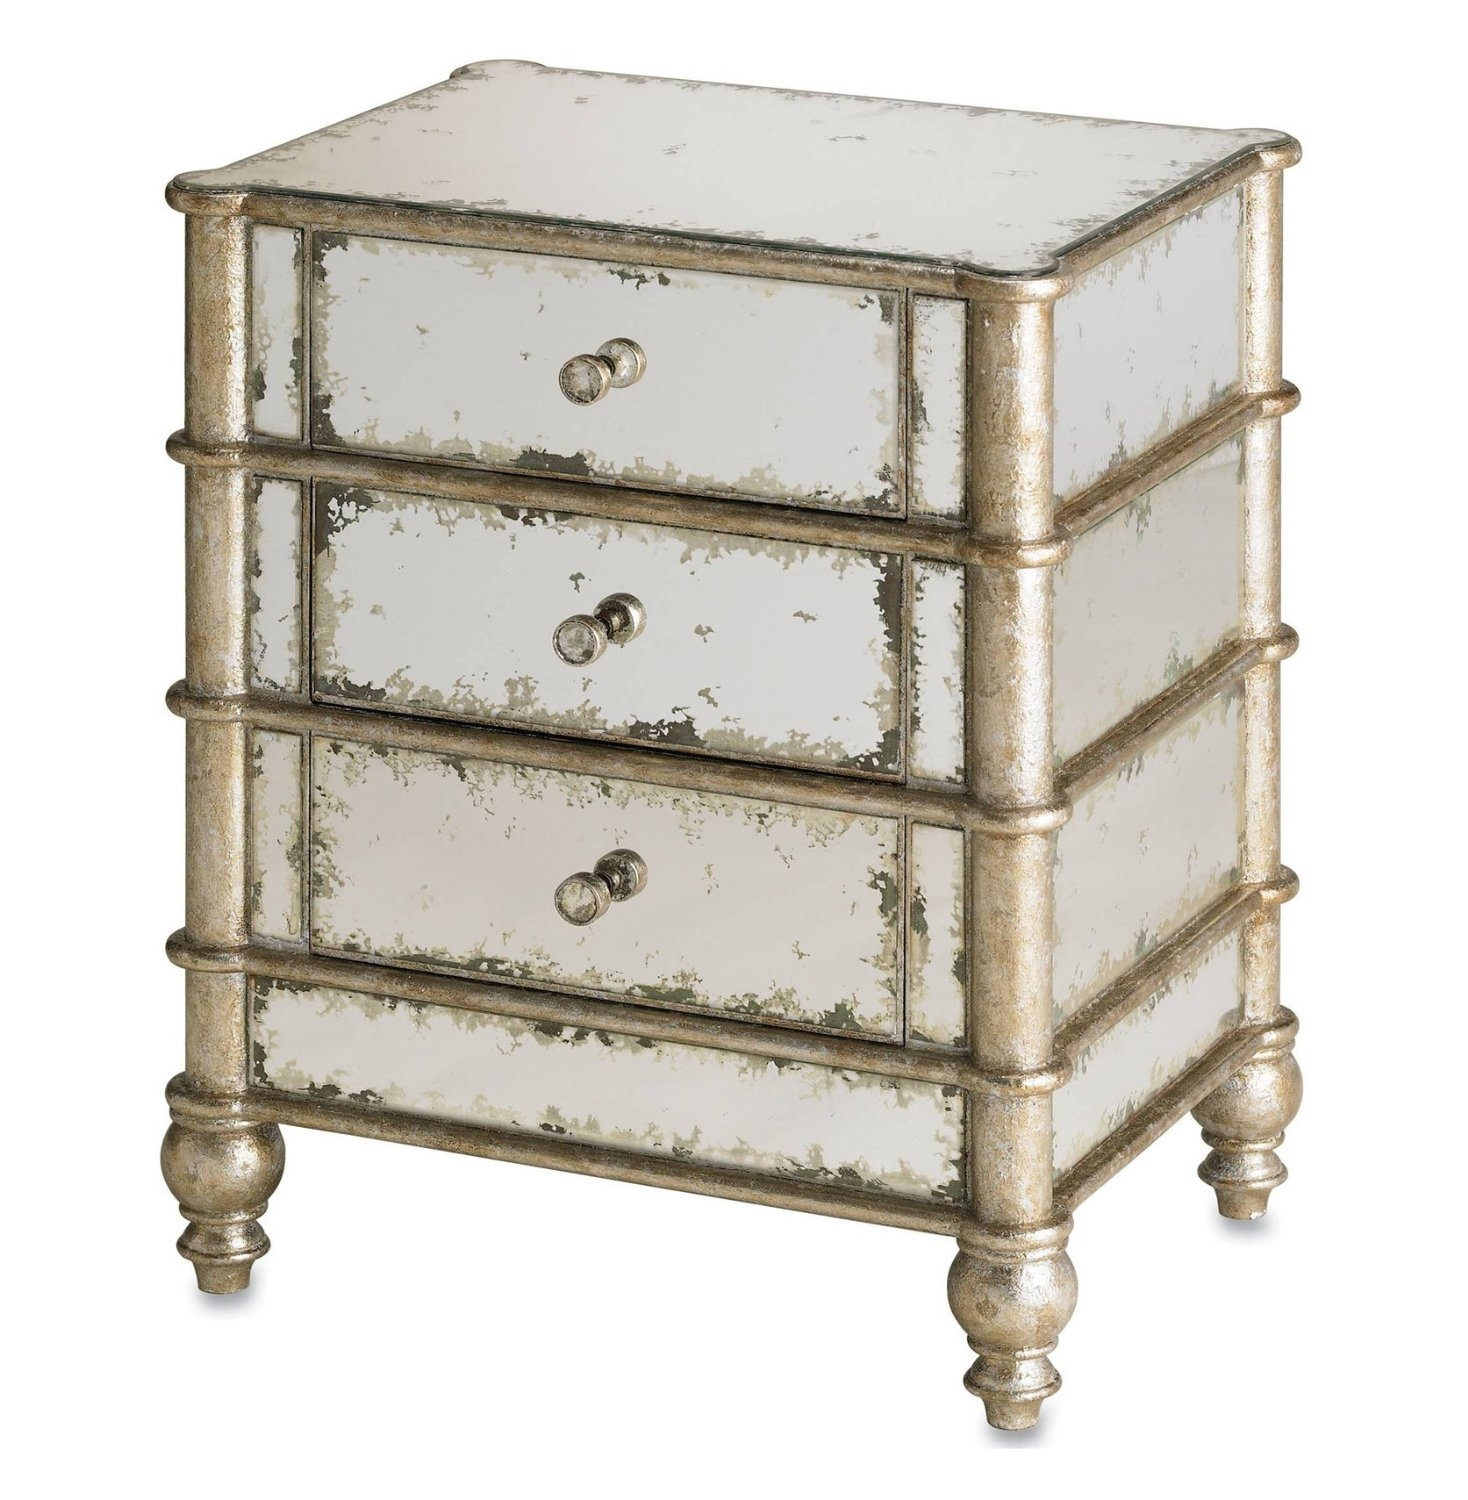 Old Antique Mirrored Bedside Table With 3 Drawer And Brass Frame Within Antique Mirrored Bedside Tables (Image 14 of 15)